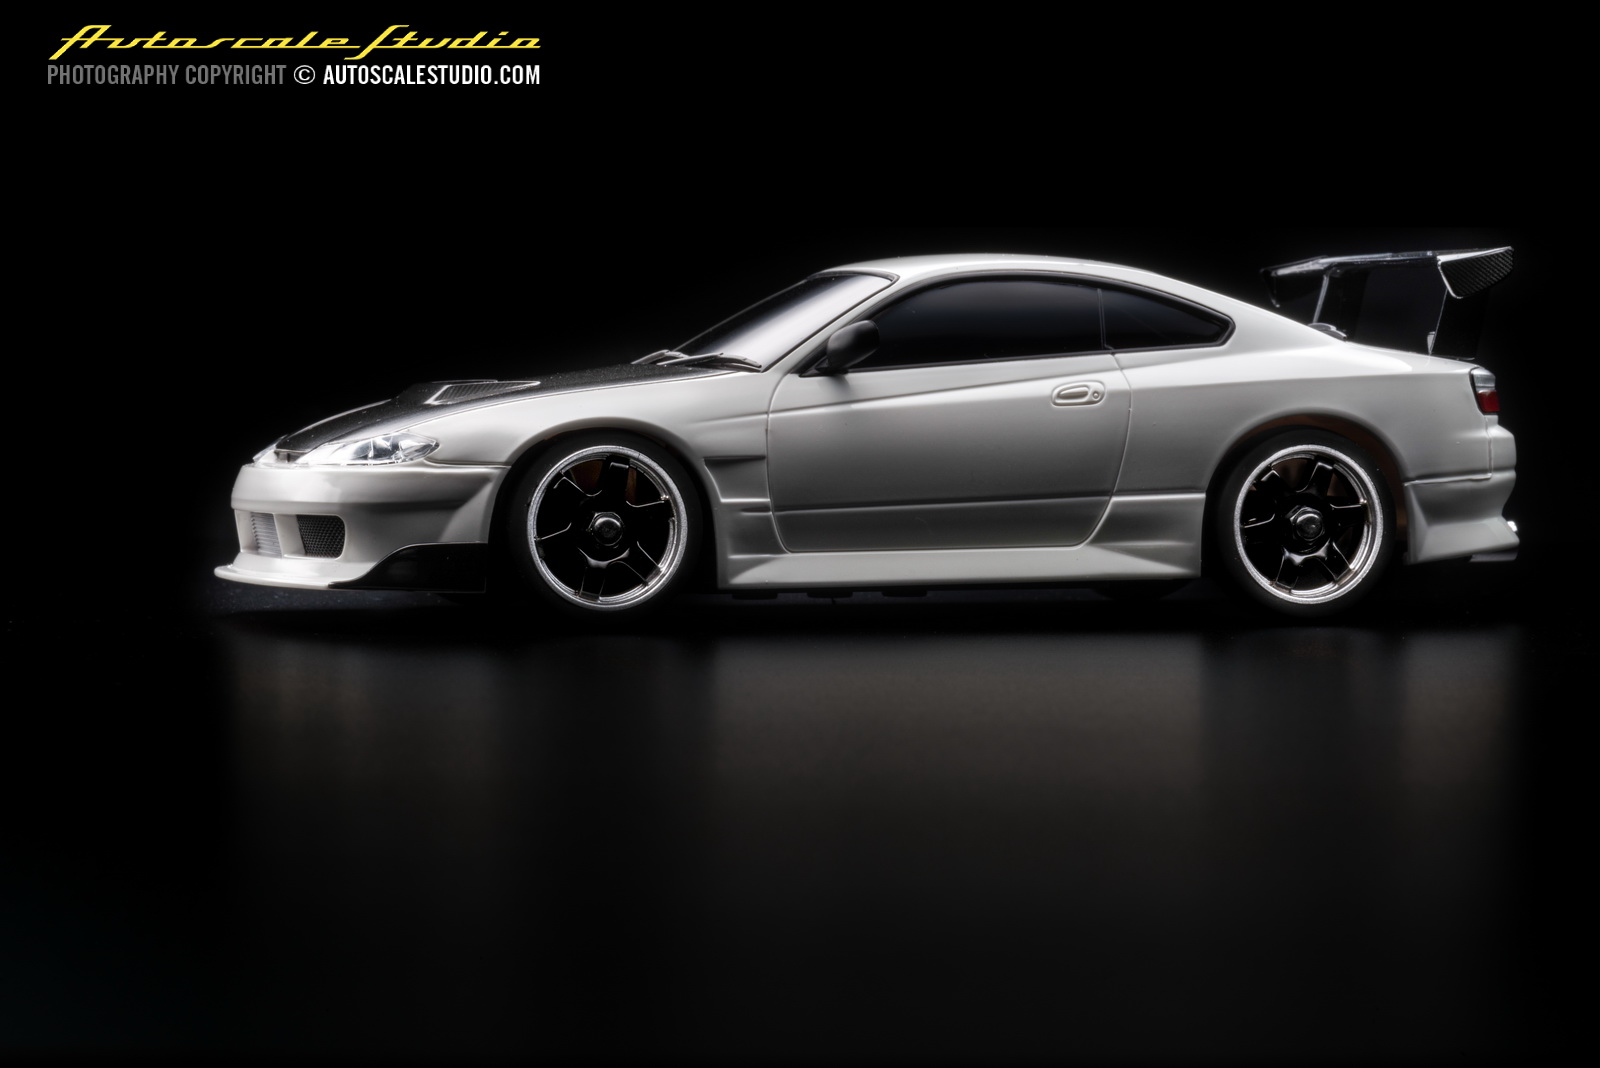 mzp413cw nissan silvia s15 gt wing carbonhood white autoscale studio. Black Bedroom Furniture Sets. Home Design Ideas